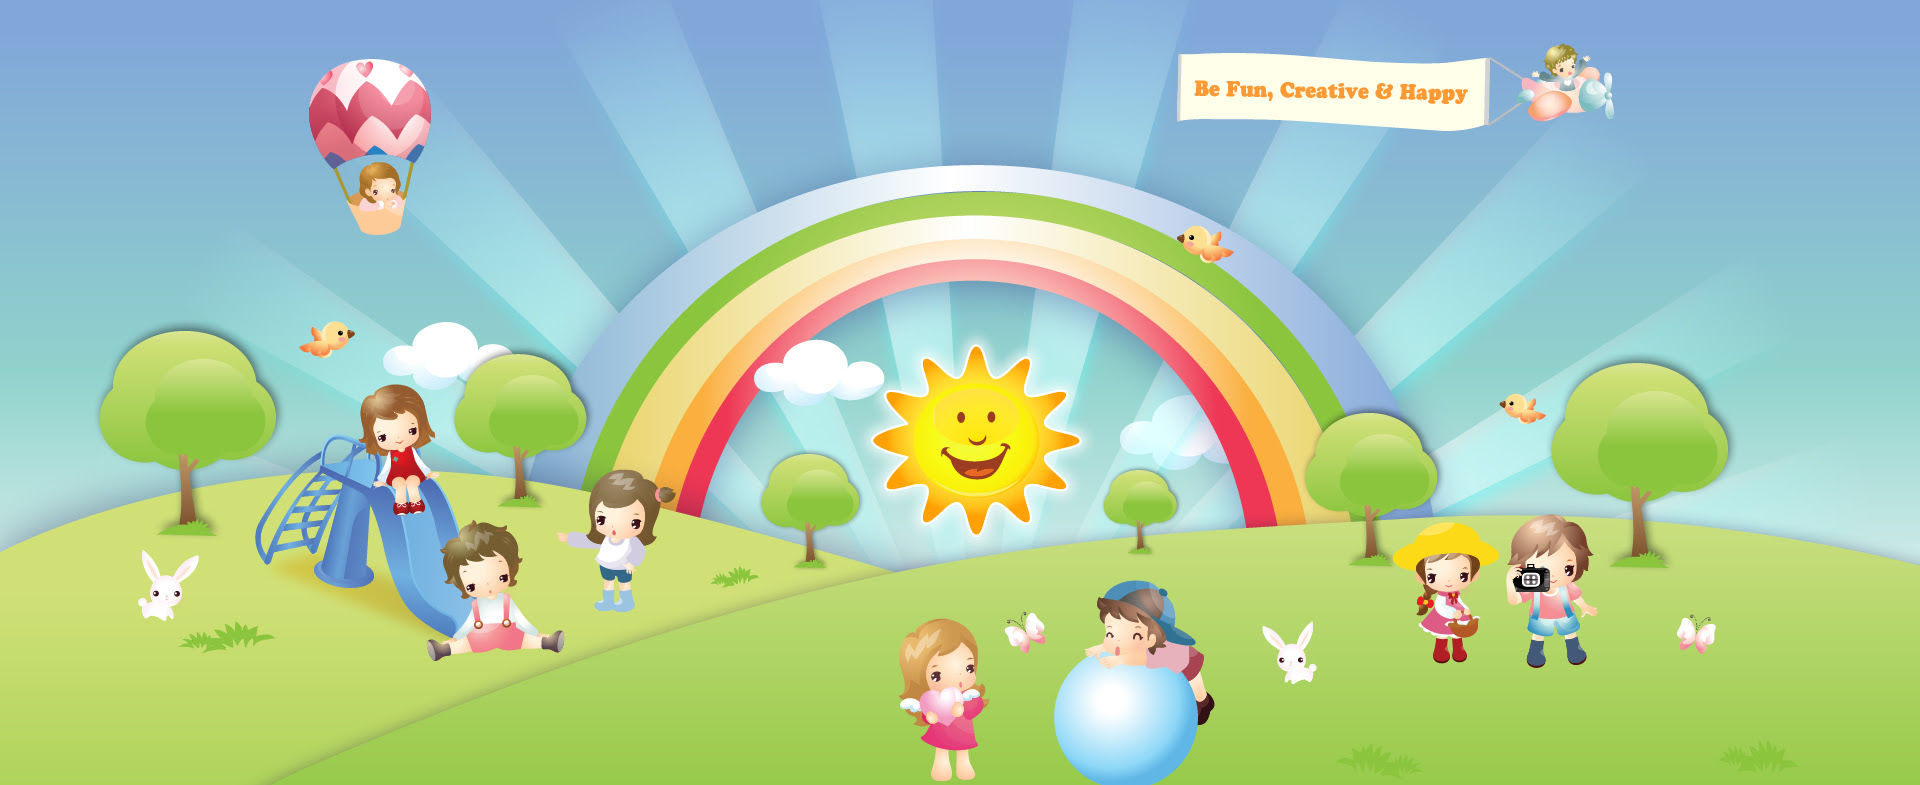 Unduh 880 Background Untuk Anak Hd HD Gratis